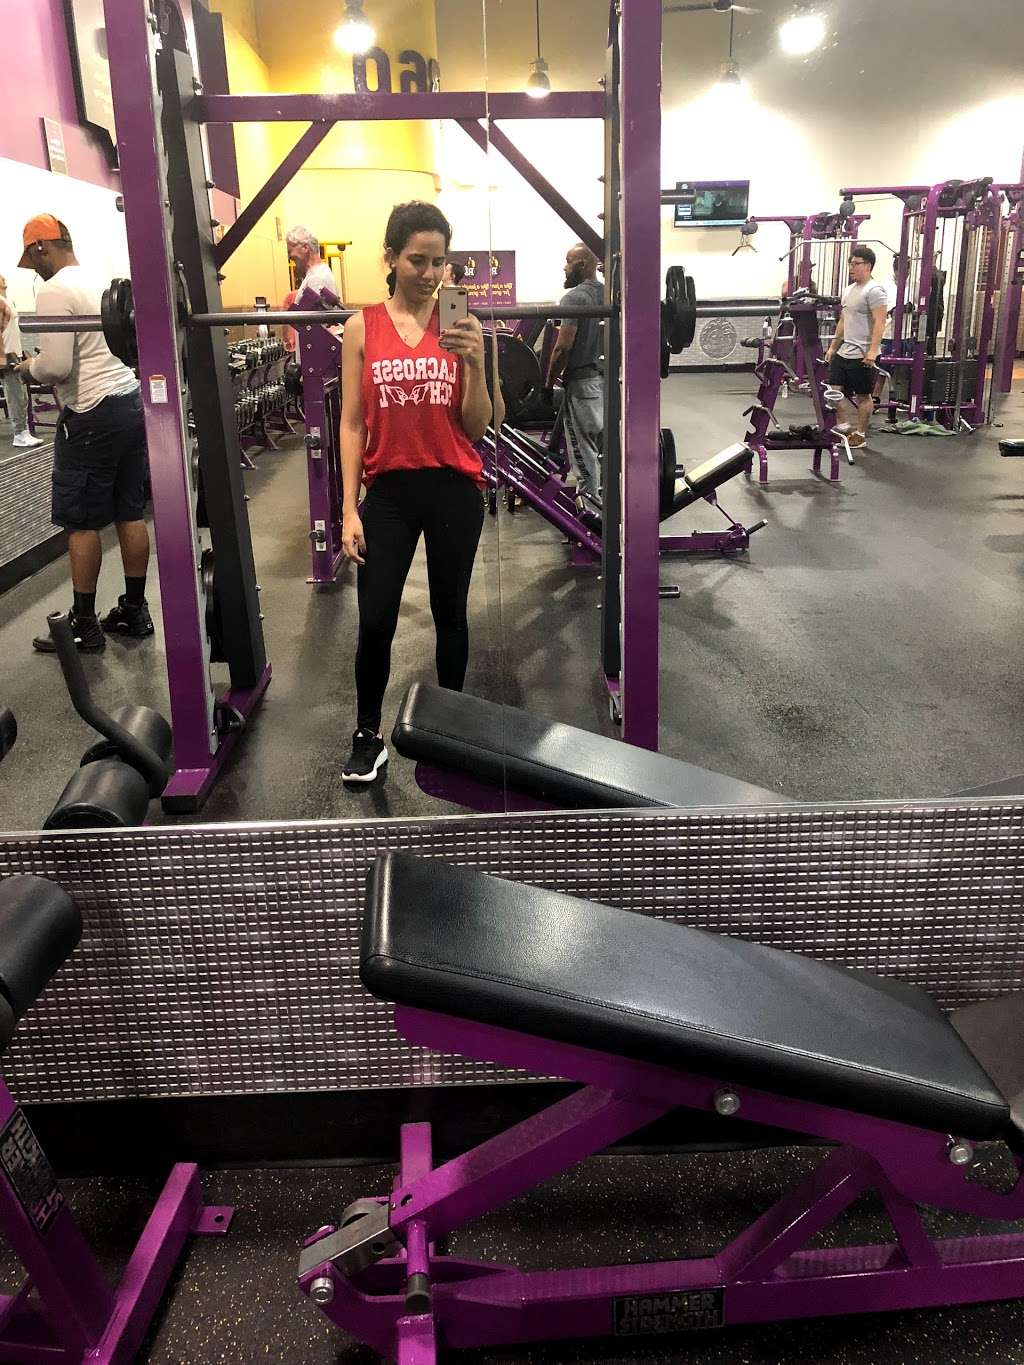 Planet Fitness Temporarily Closed 125 W College Ave Salisbury Md 21804 Usa